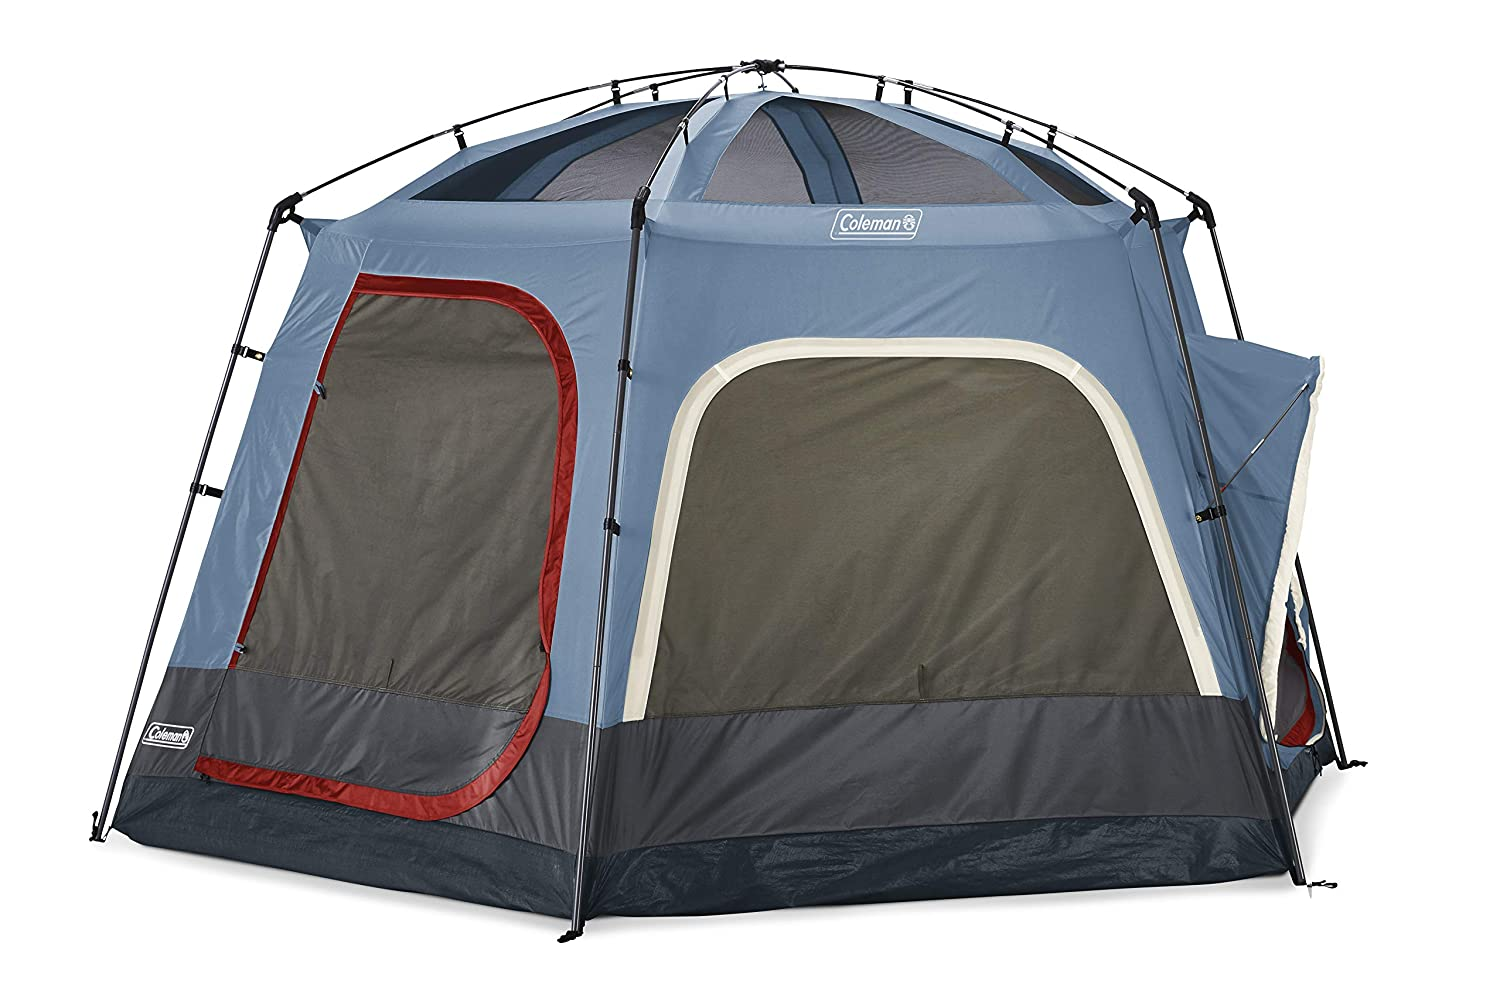 4210aab3c32 Coleman 3-Person Connectable Tent | Connecting Modular Tent System with Fast  Pitch Setup: Amazon.ca: Sports & Outdoors